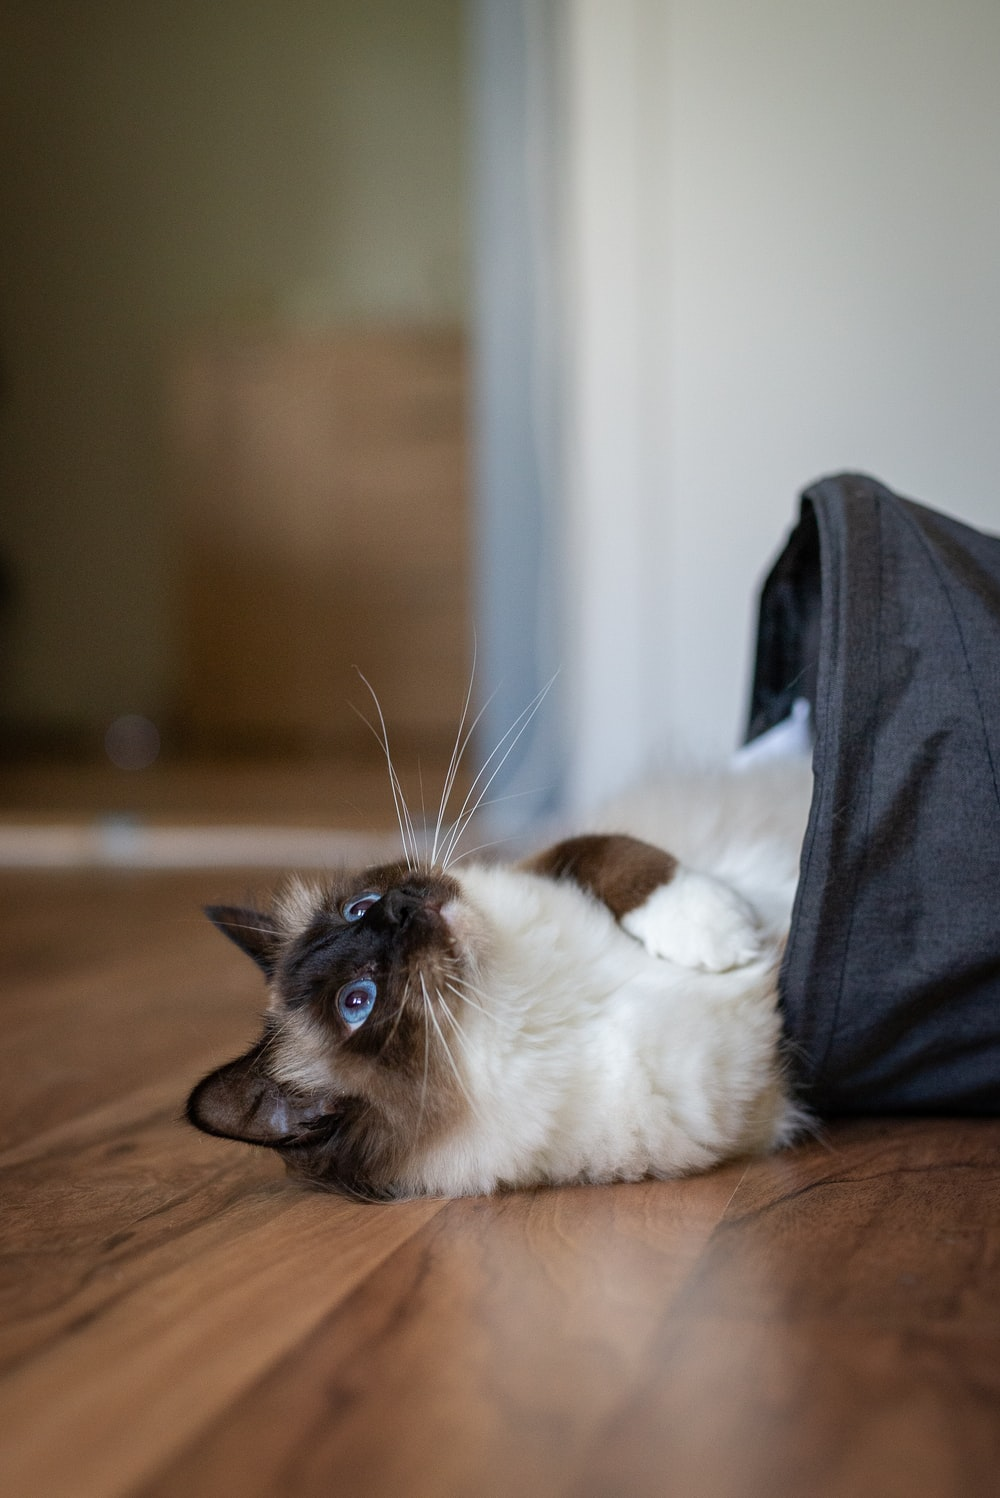 himalayan cat in pouch